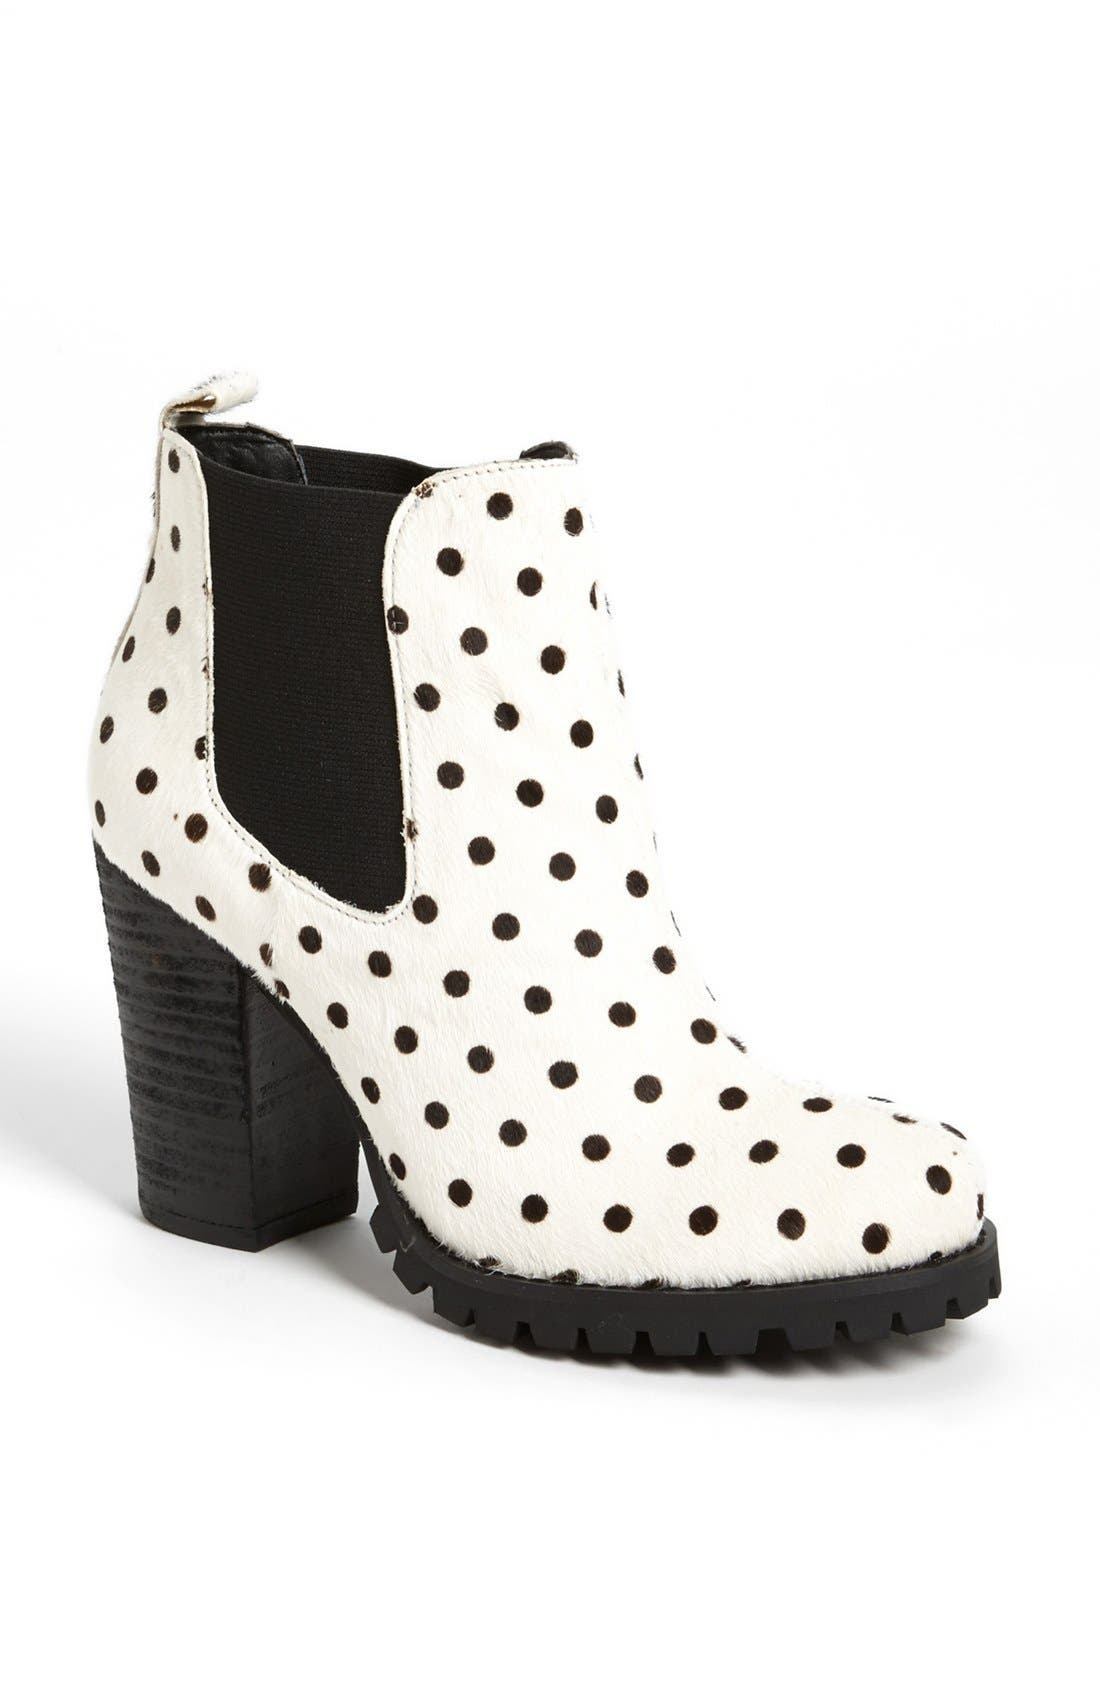 Alternate Image 1 Selected - Chinese Laundry 'Brash' Boot (Limited Edition)